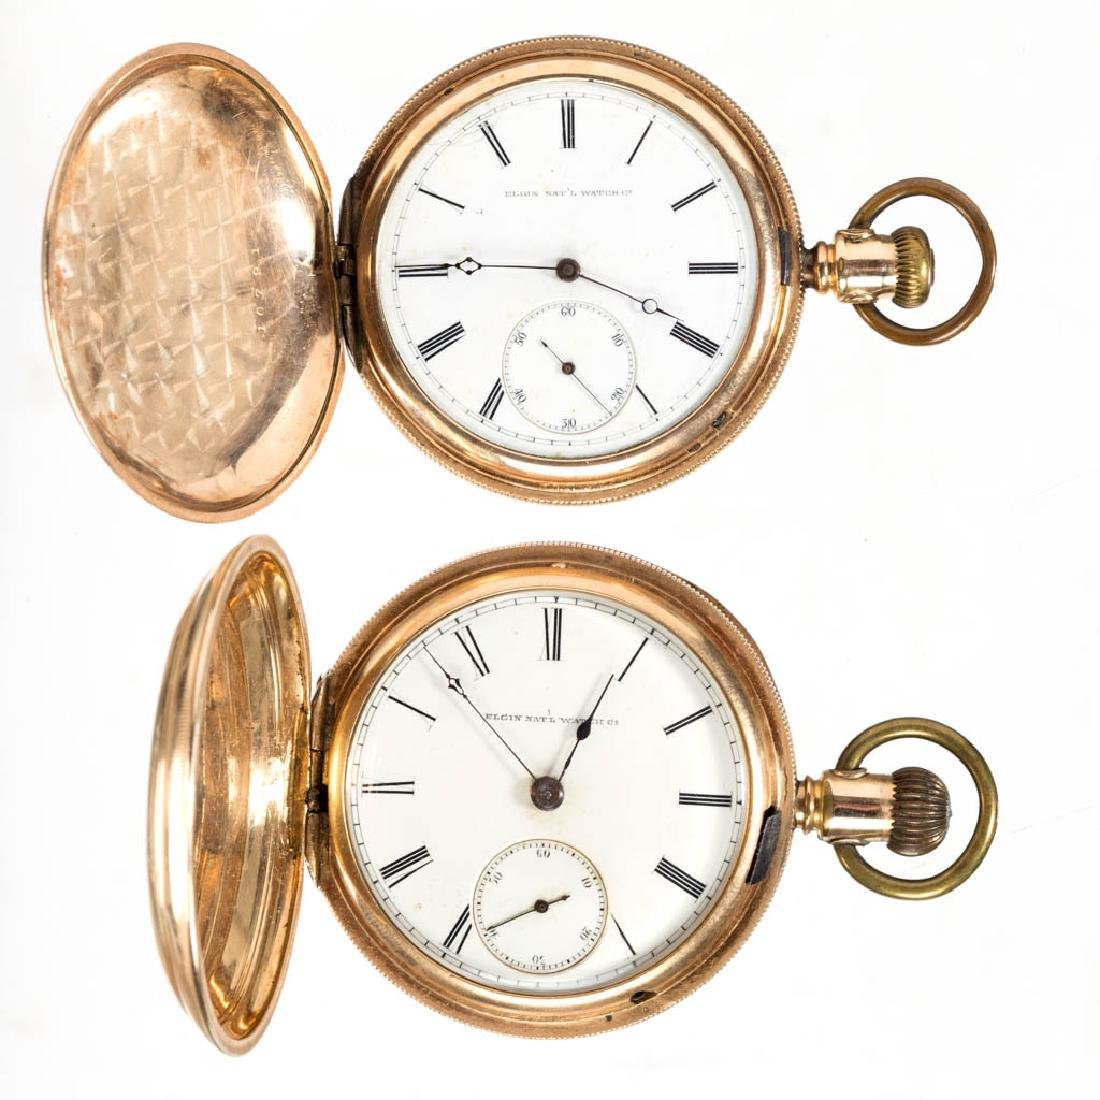 ELGIN HUNTER-CASE MAN'S POCKET WATCHES, LOT OF TWO